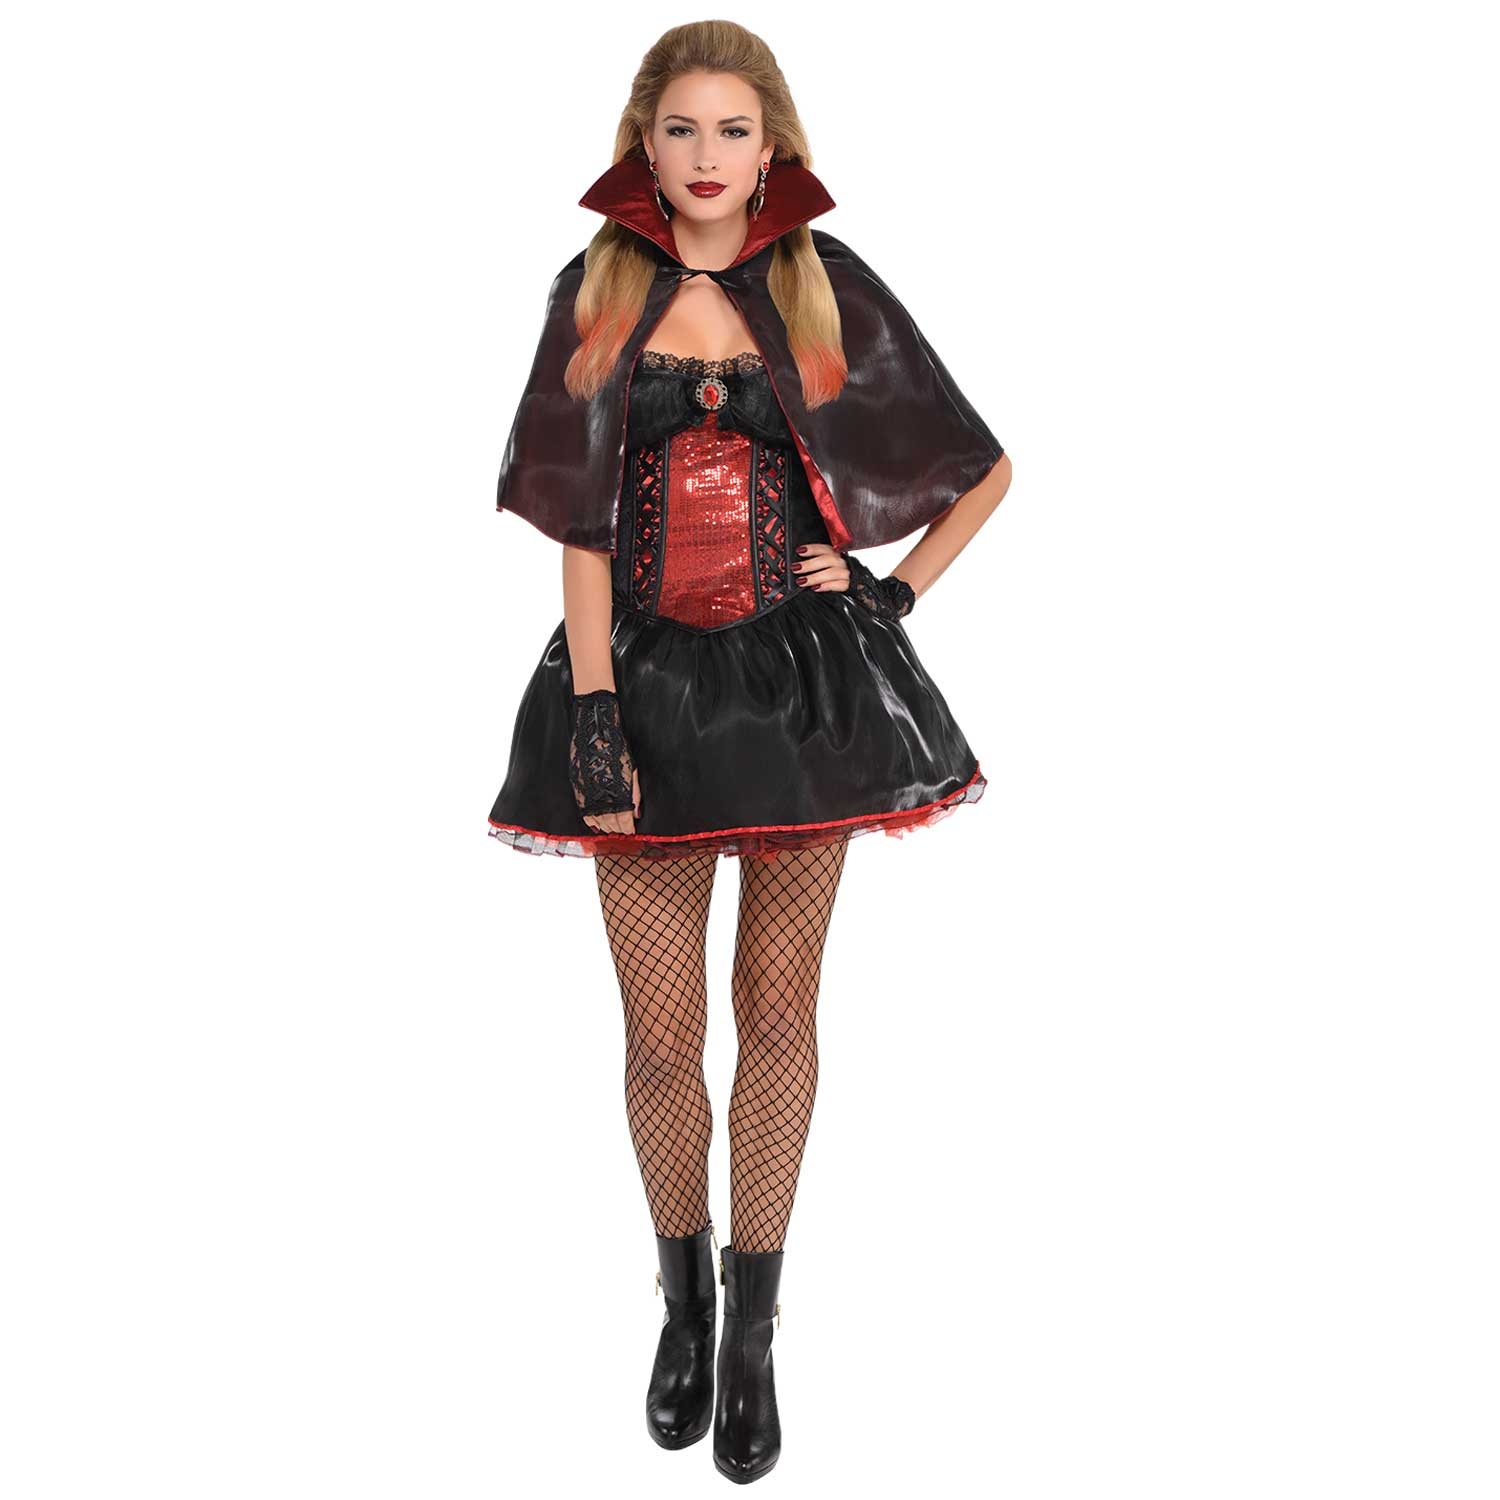 Halloween costumes too sexy for teens the mercury news